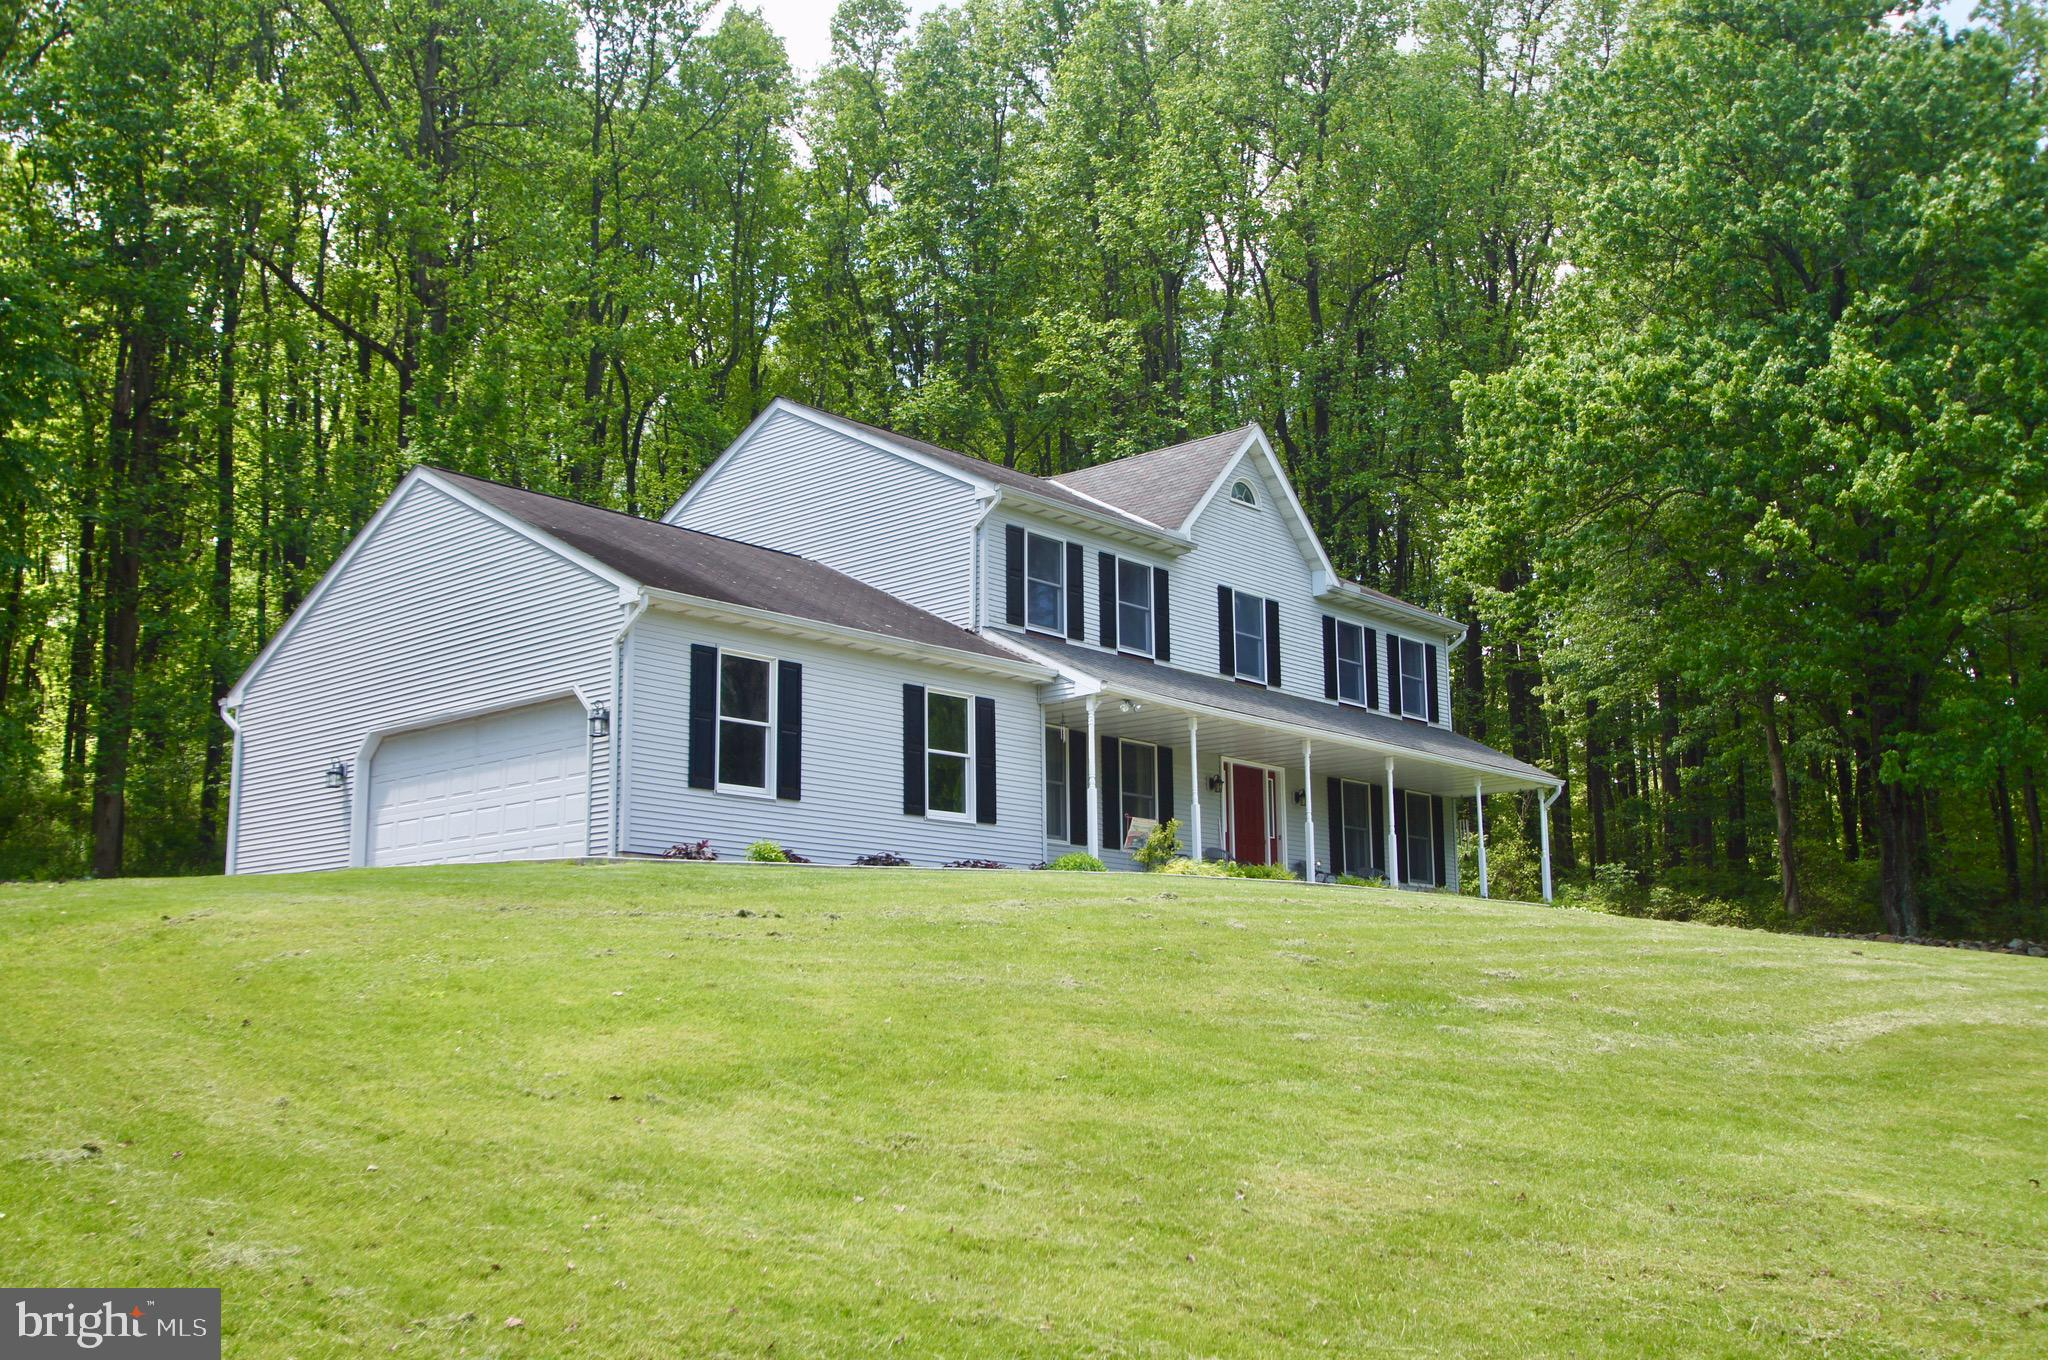 127 LEE SPRING ROAD, BLANDON, PA 19510